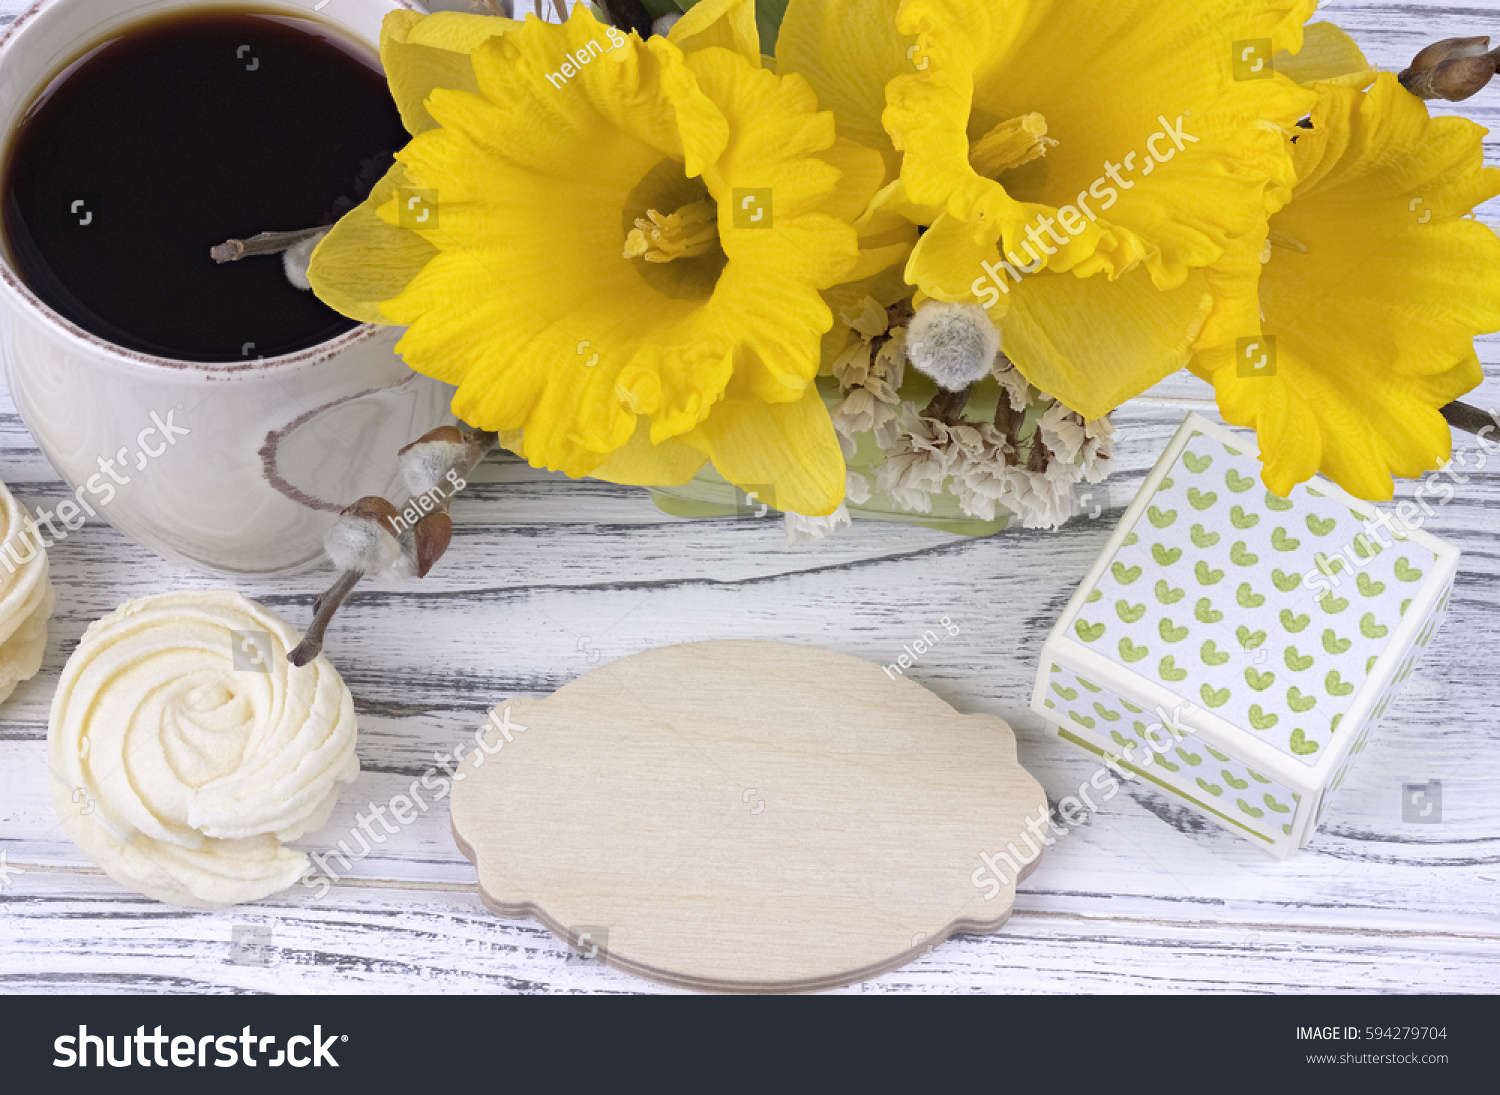 Cup Of Coffee With Marshmallow Green Gift Box Yellow Flowers On